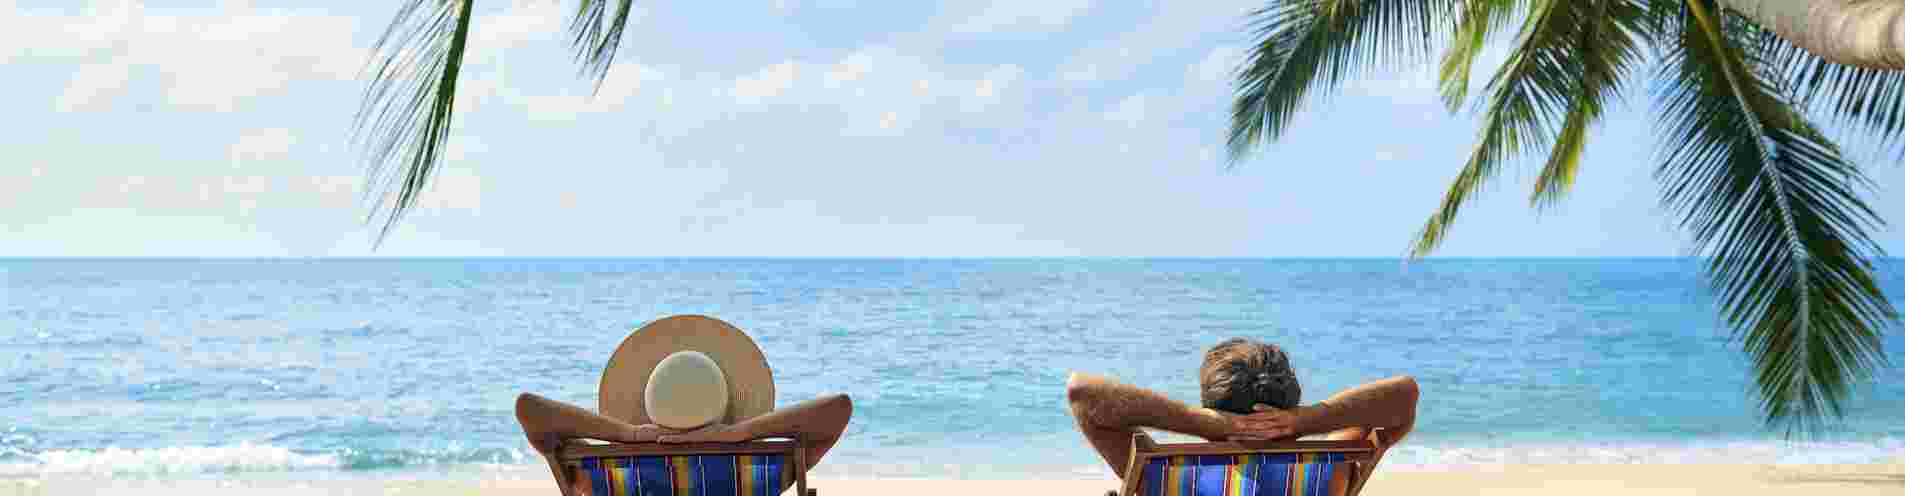 FIVE rules for stress-free travel in 2021 header image